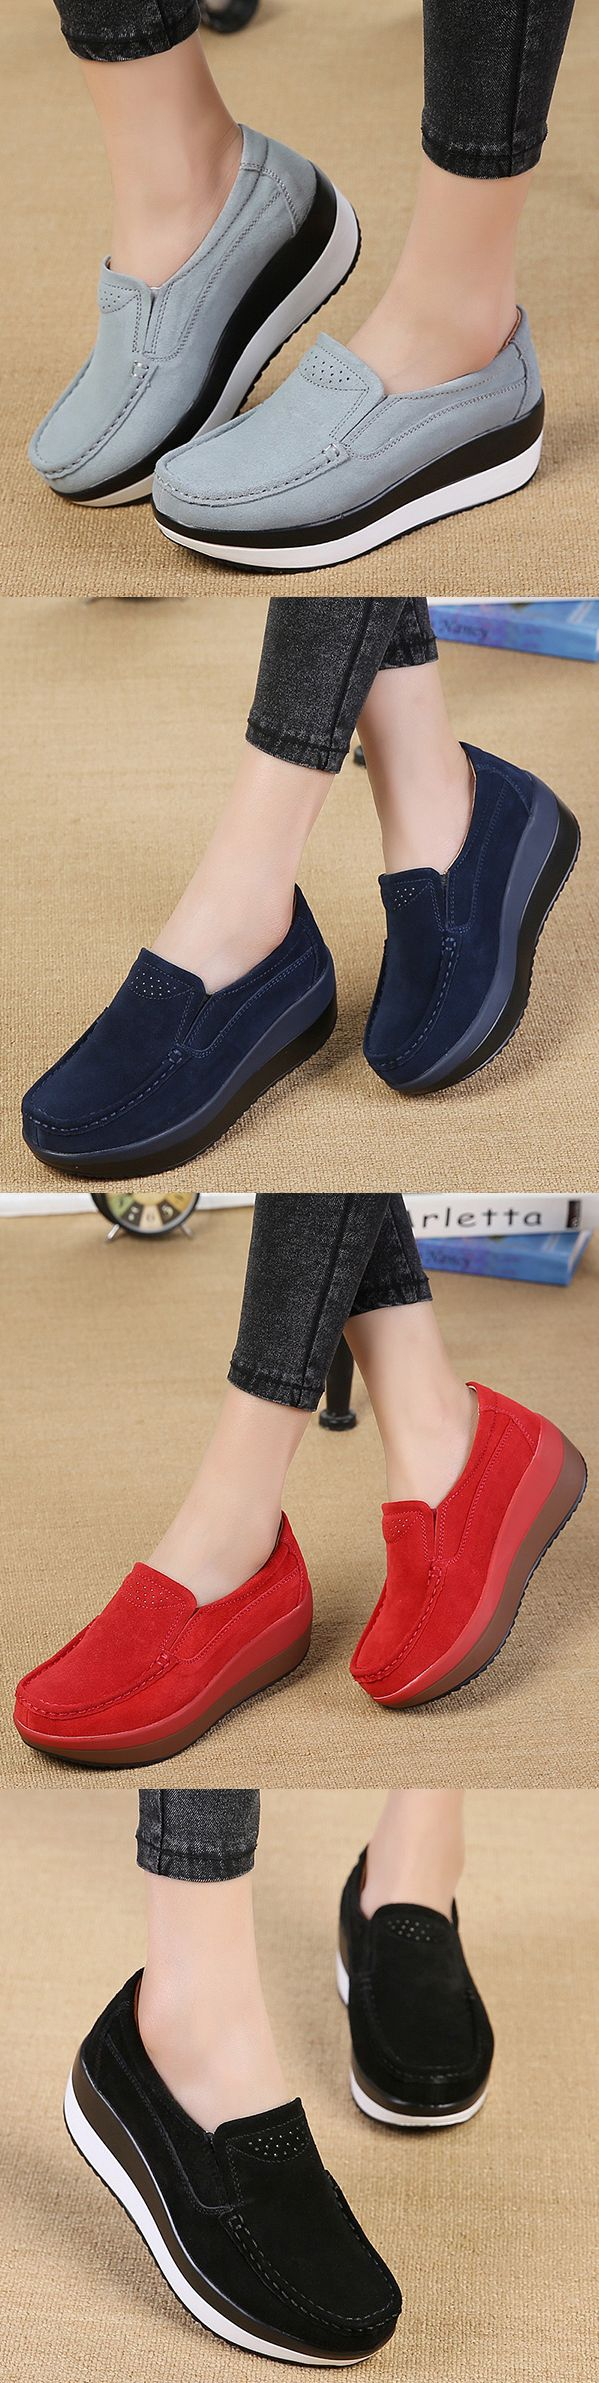 Do You Want The Large Size Rocker Suede Shoes For Your Fall and Winter.I Think This One Will Be Your Best Choice.Don't  Hesitate to Take It!